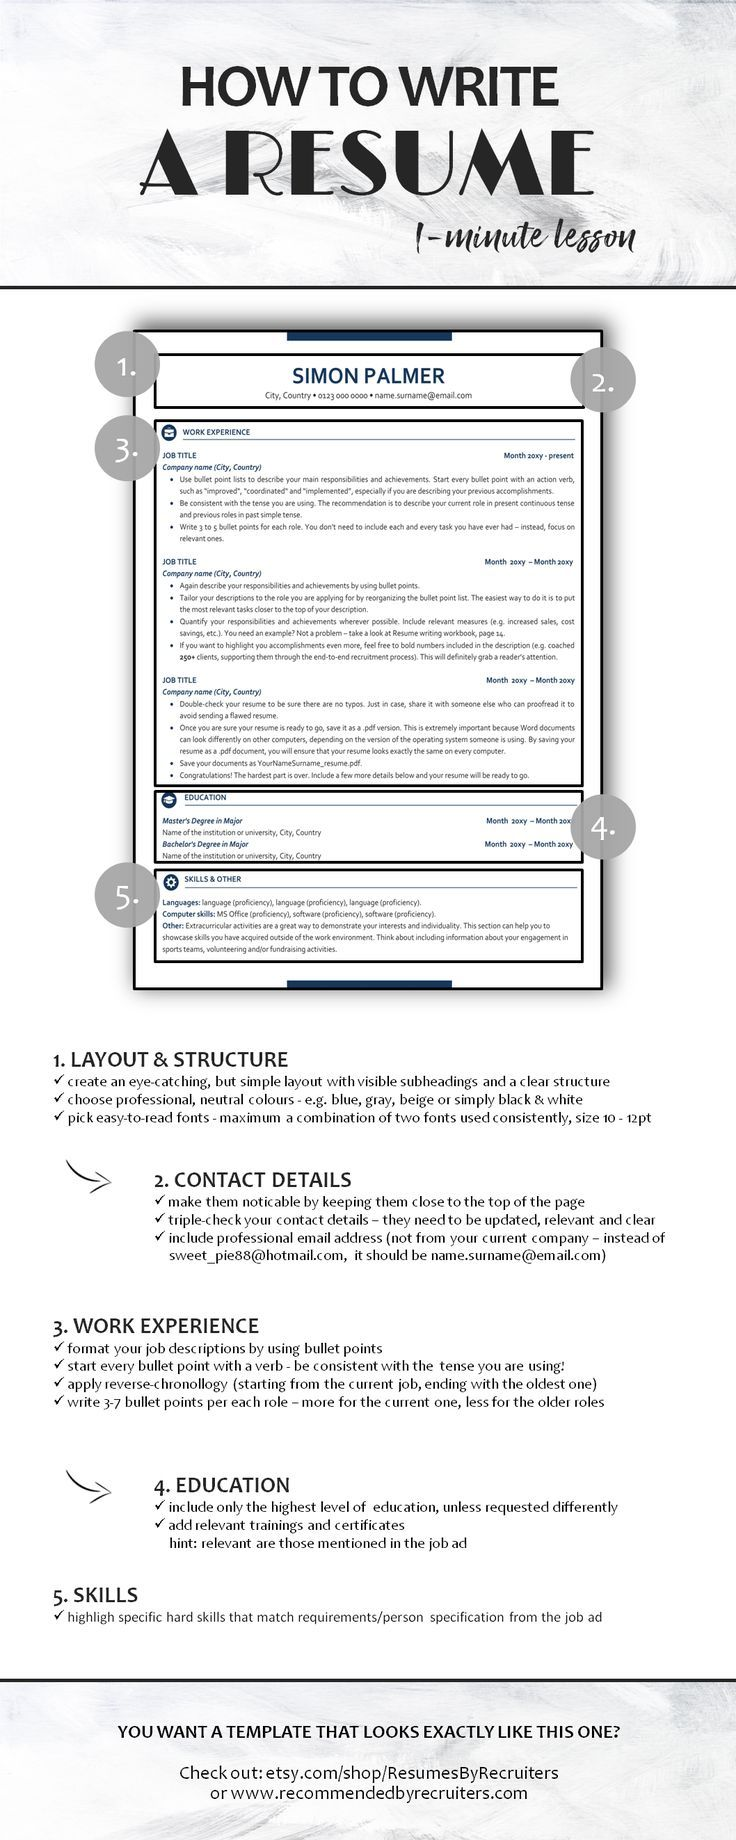 How to write a resume five quick tips for a perfect cv